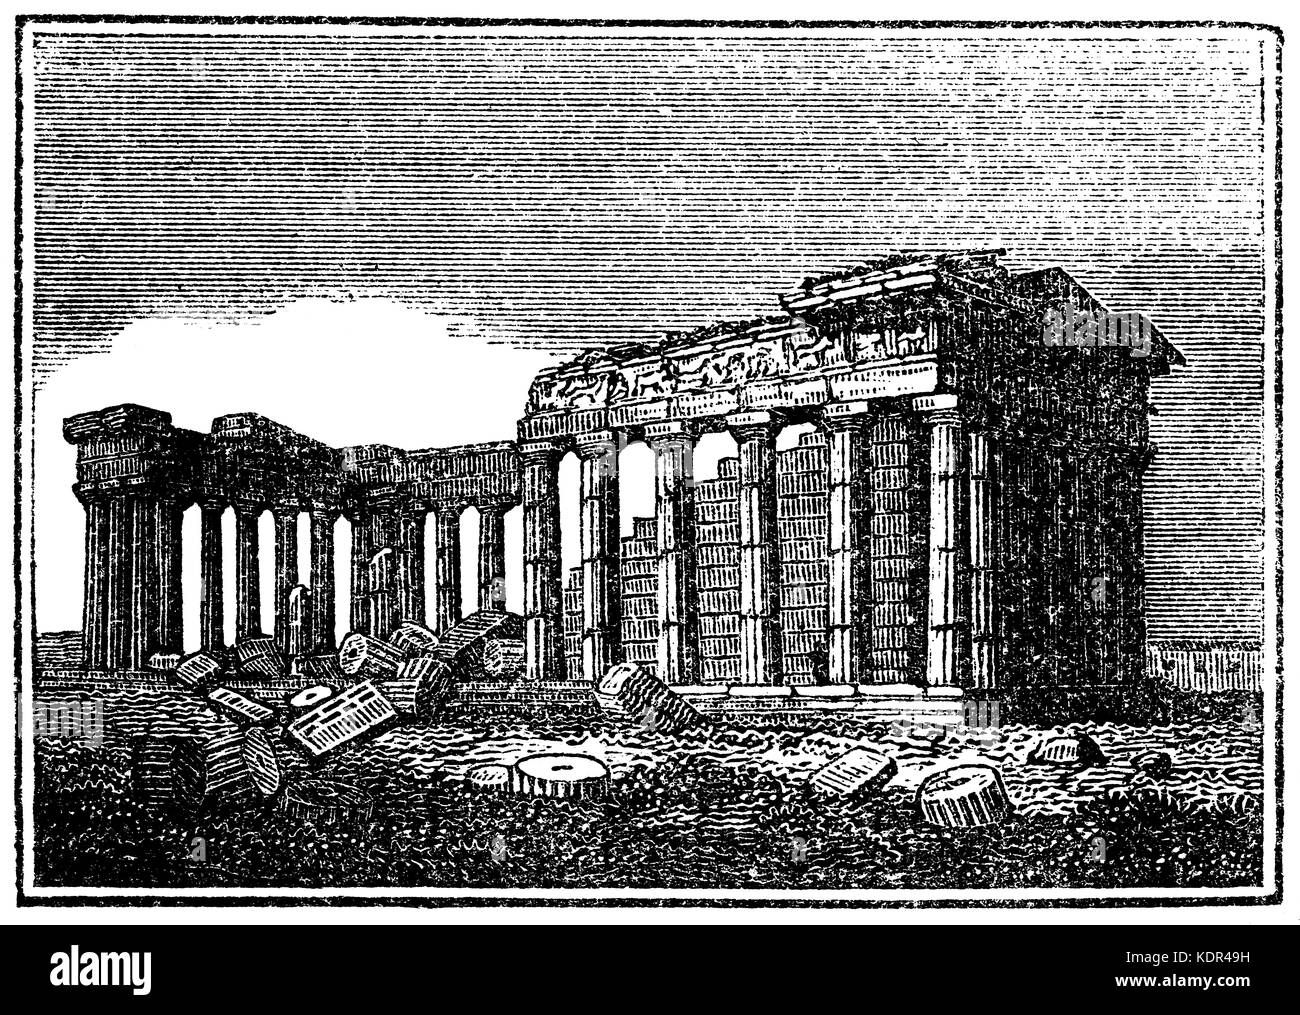 The Parthenon from 1825 woodcut - Stock Image